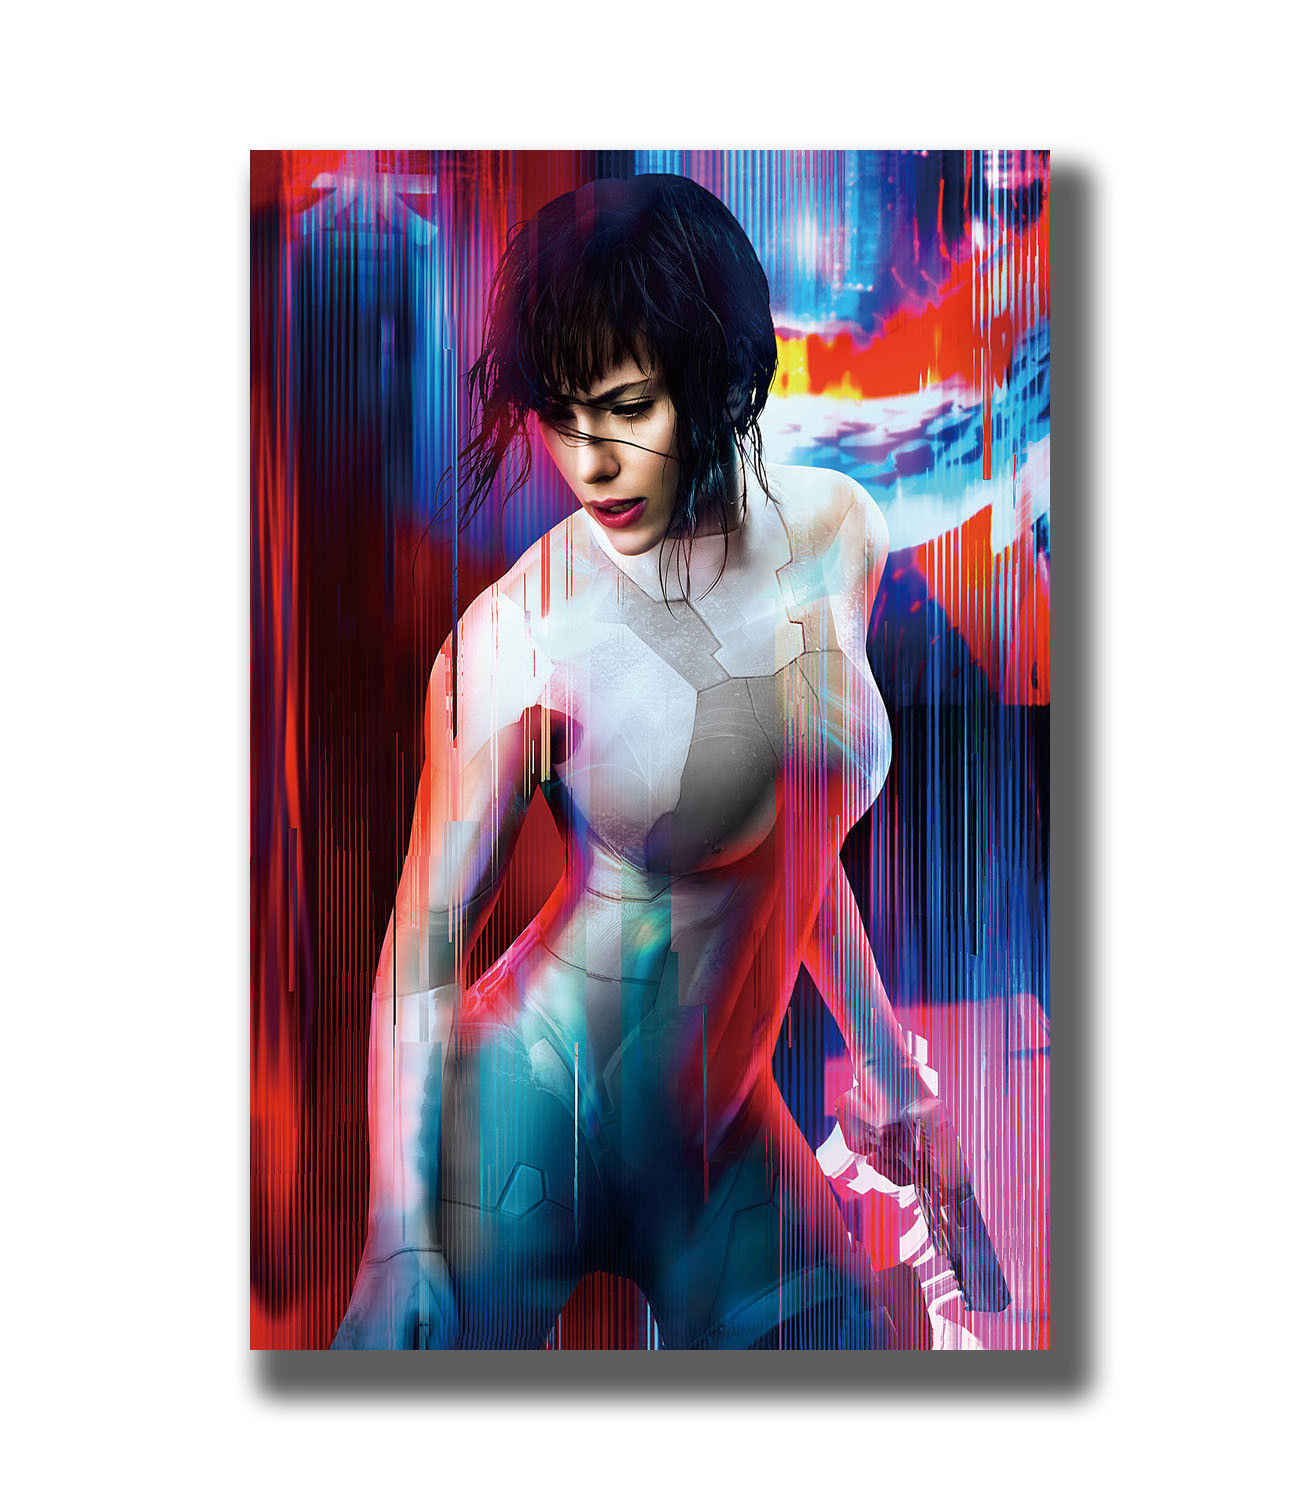 Q0546 Posters And Prints Ghost In The Shell Scarlett Johansson Hot Movie Art Poster Canvas Painting Home Decor Painting Calligraphy Aliexpress